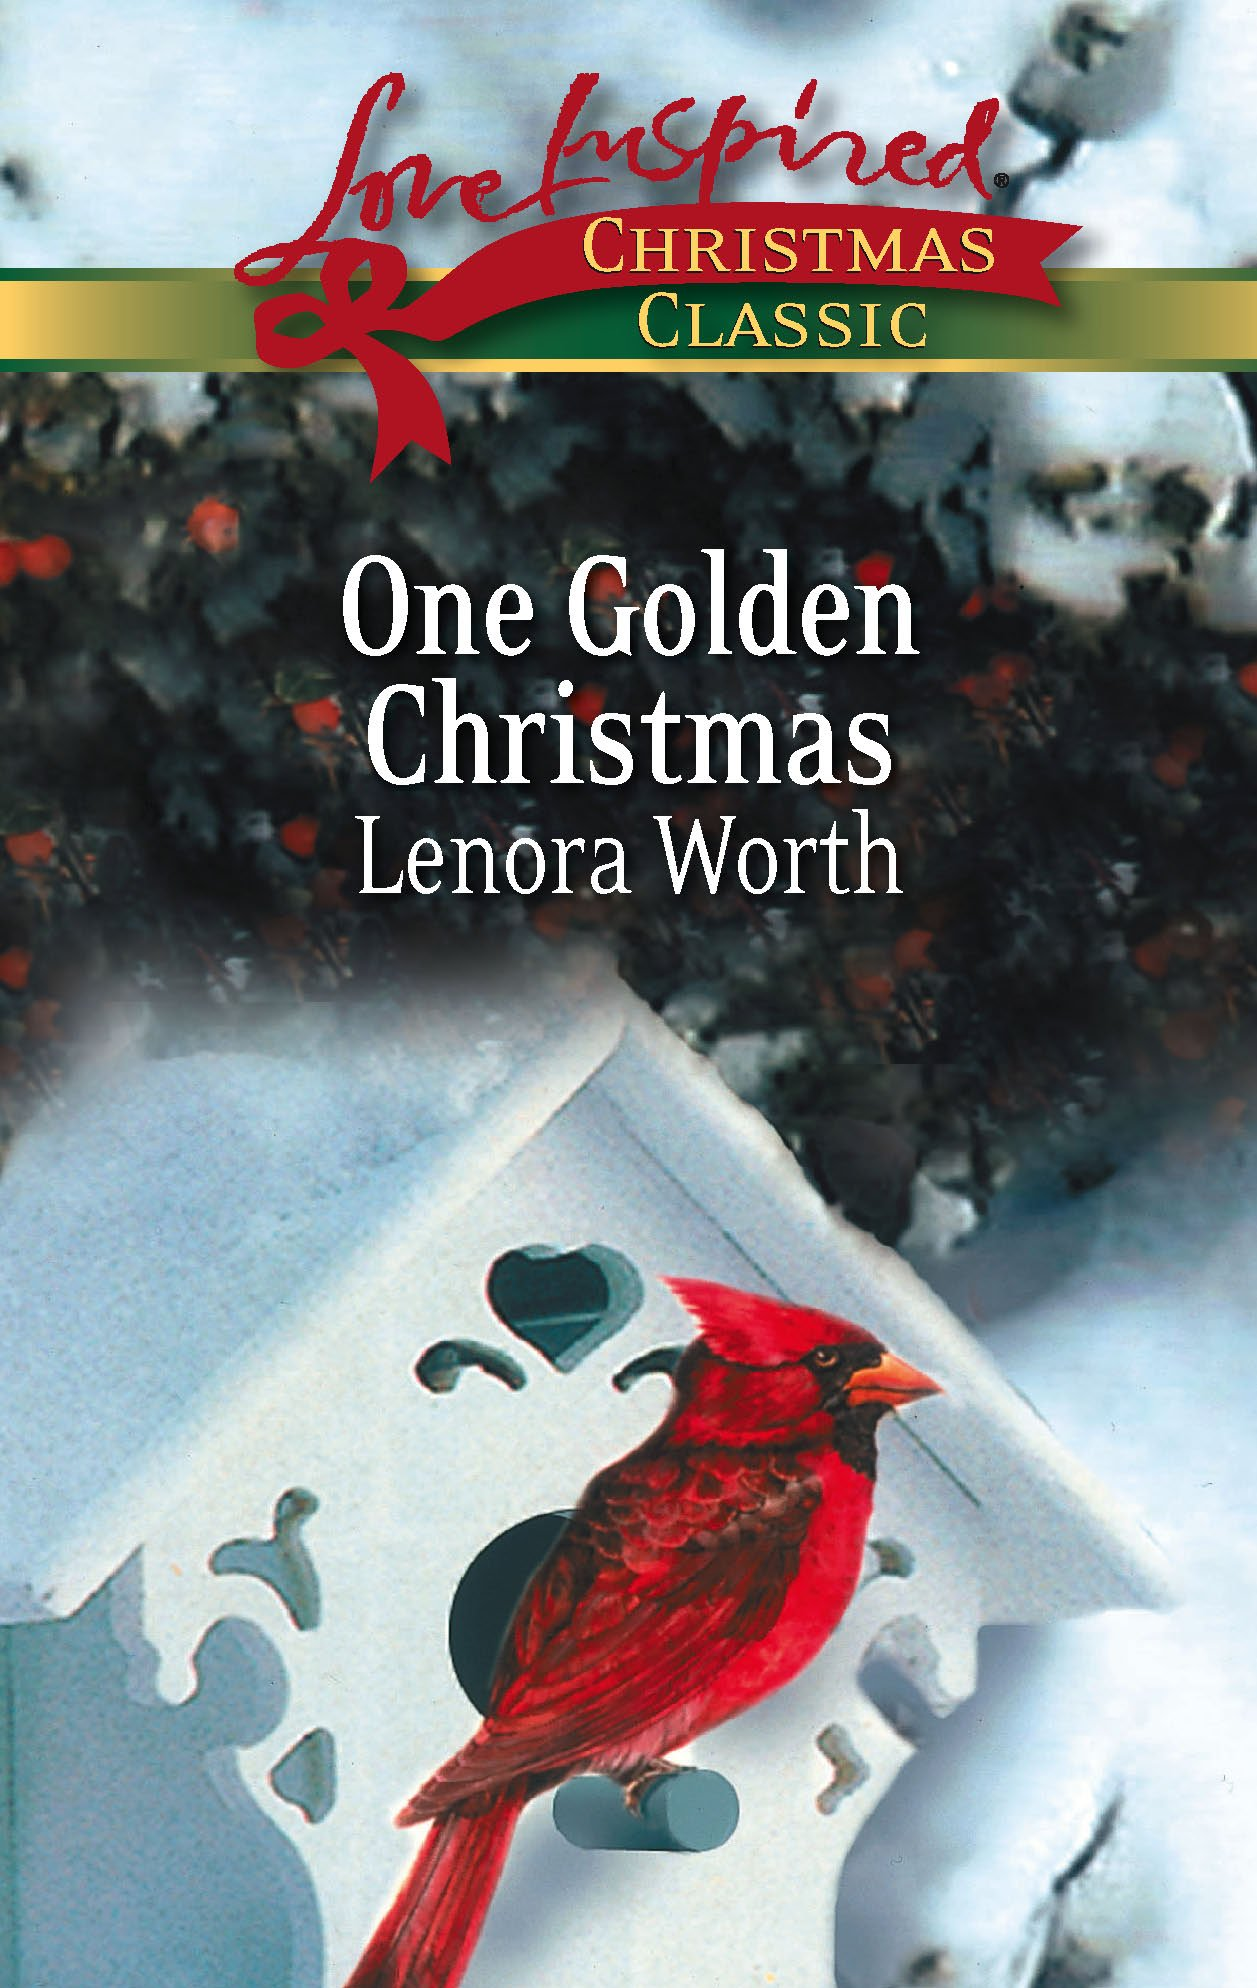 Download One Golden Christmas (Love Inspired Christmas Classic) pdf